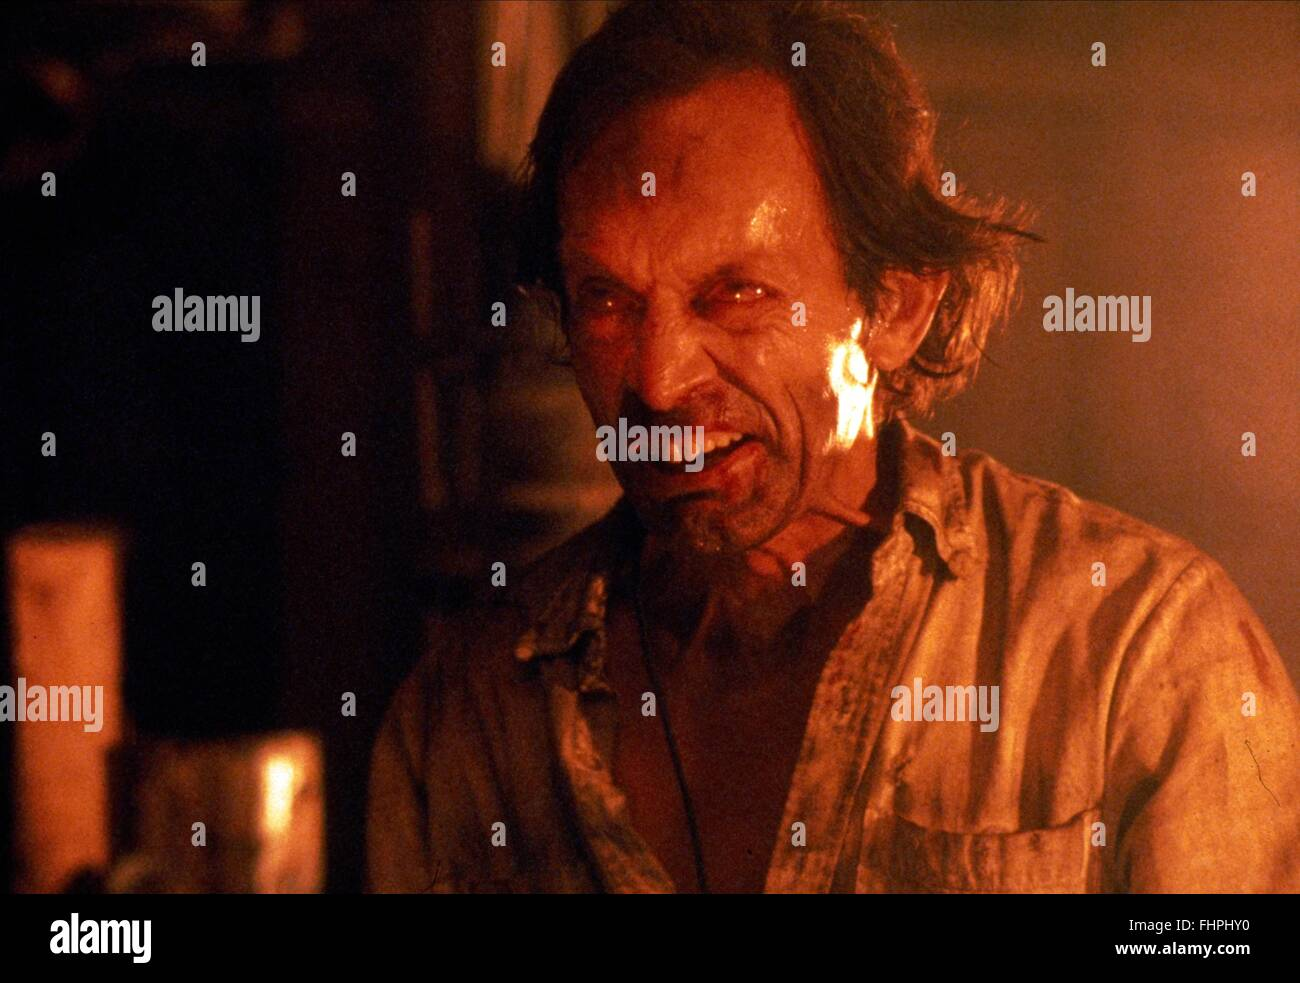 lance henriksen biography